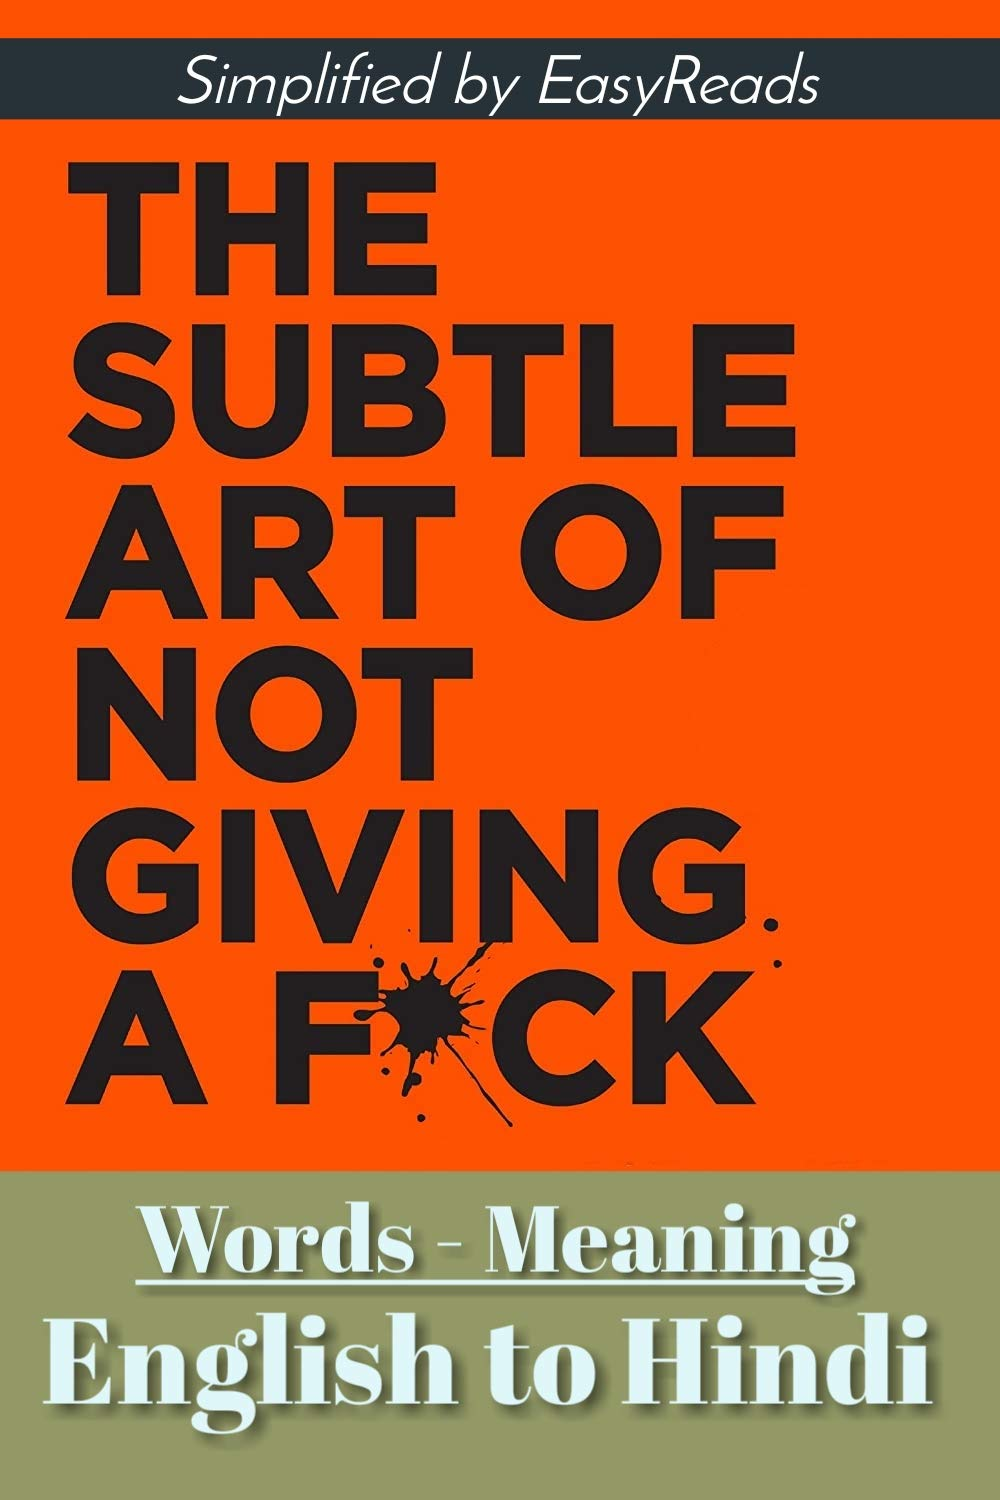 Words Meaning: The Subtle Art of not giving a Fu*k